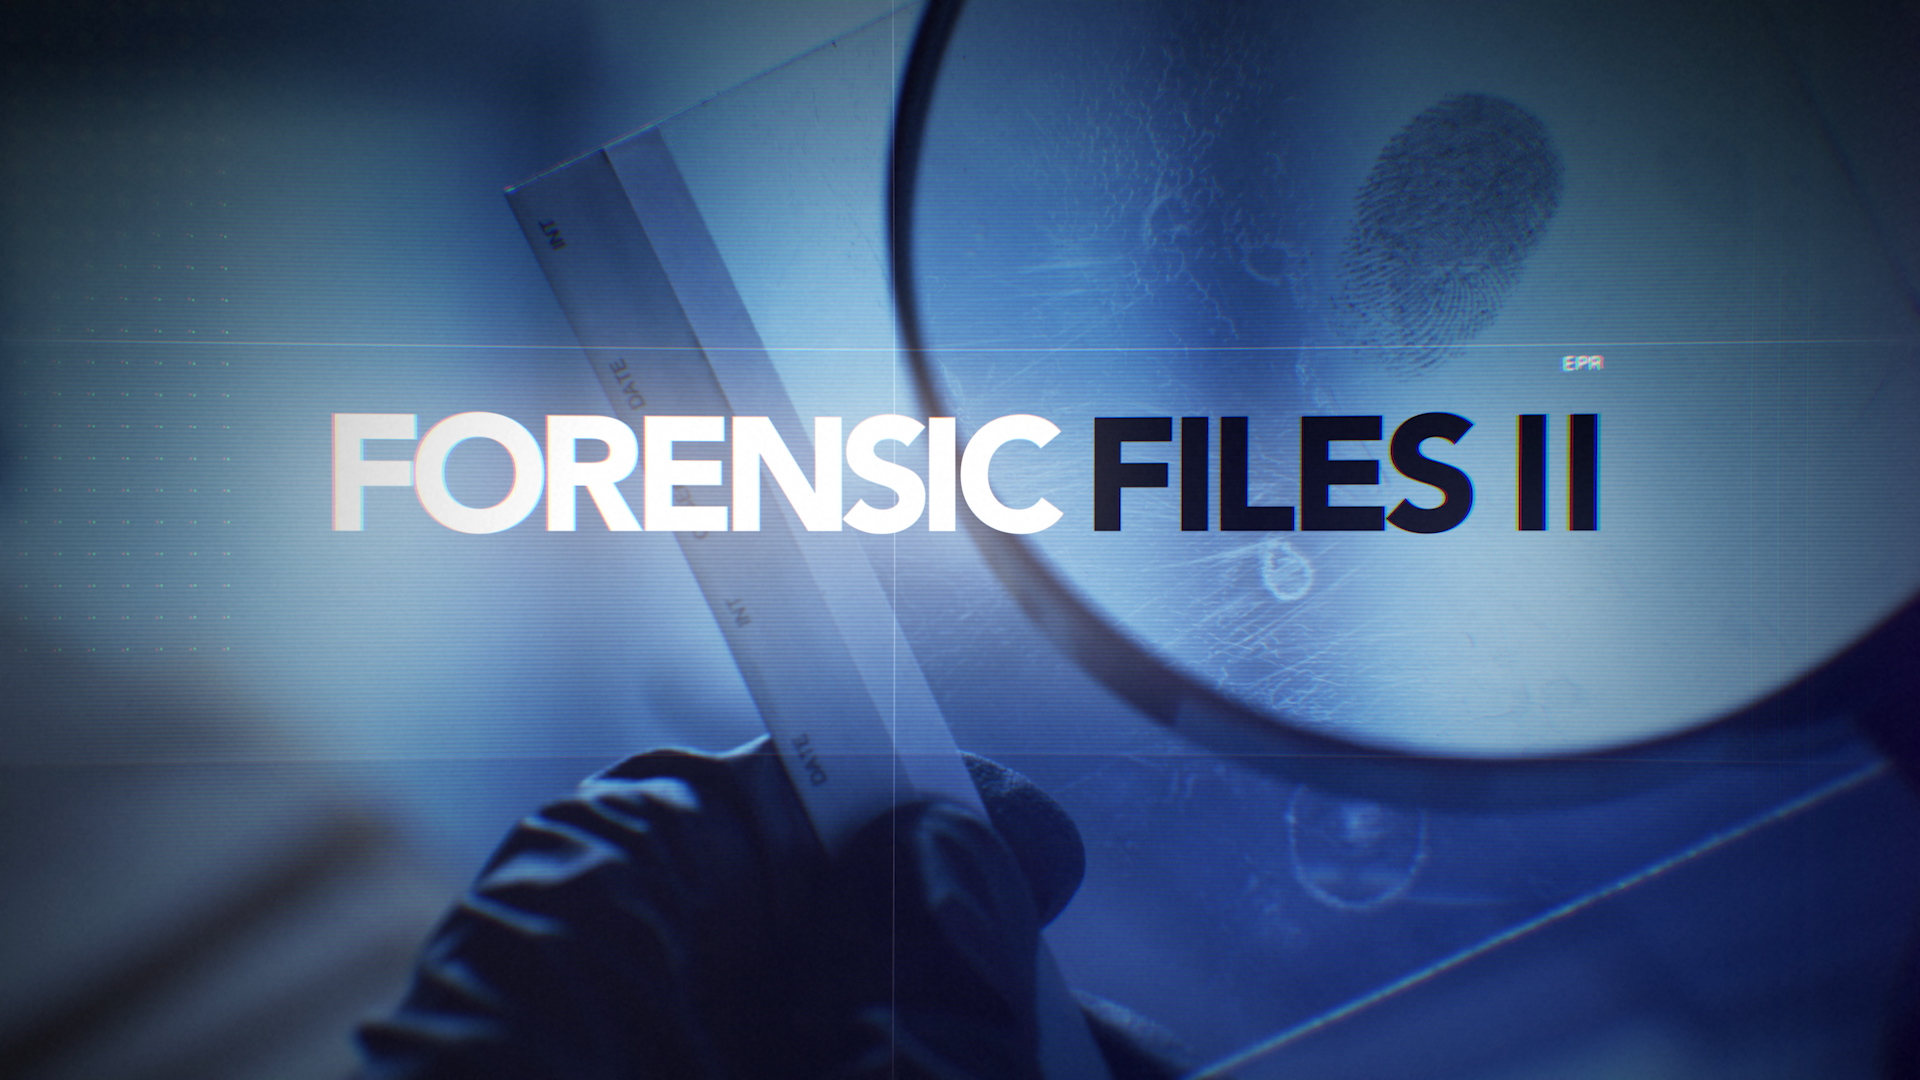 Forensic Files Ii Hln S Highest Rated Original Series Ever Is Renewed For Two Seasons With 32 Episodes